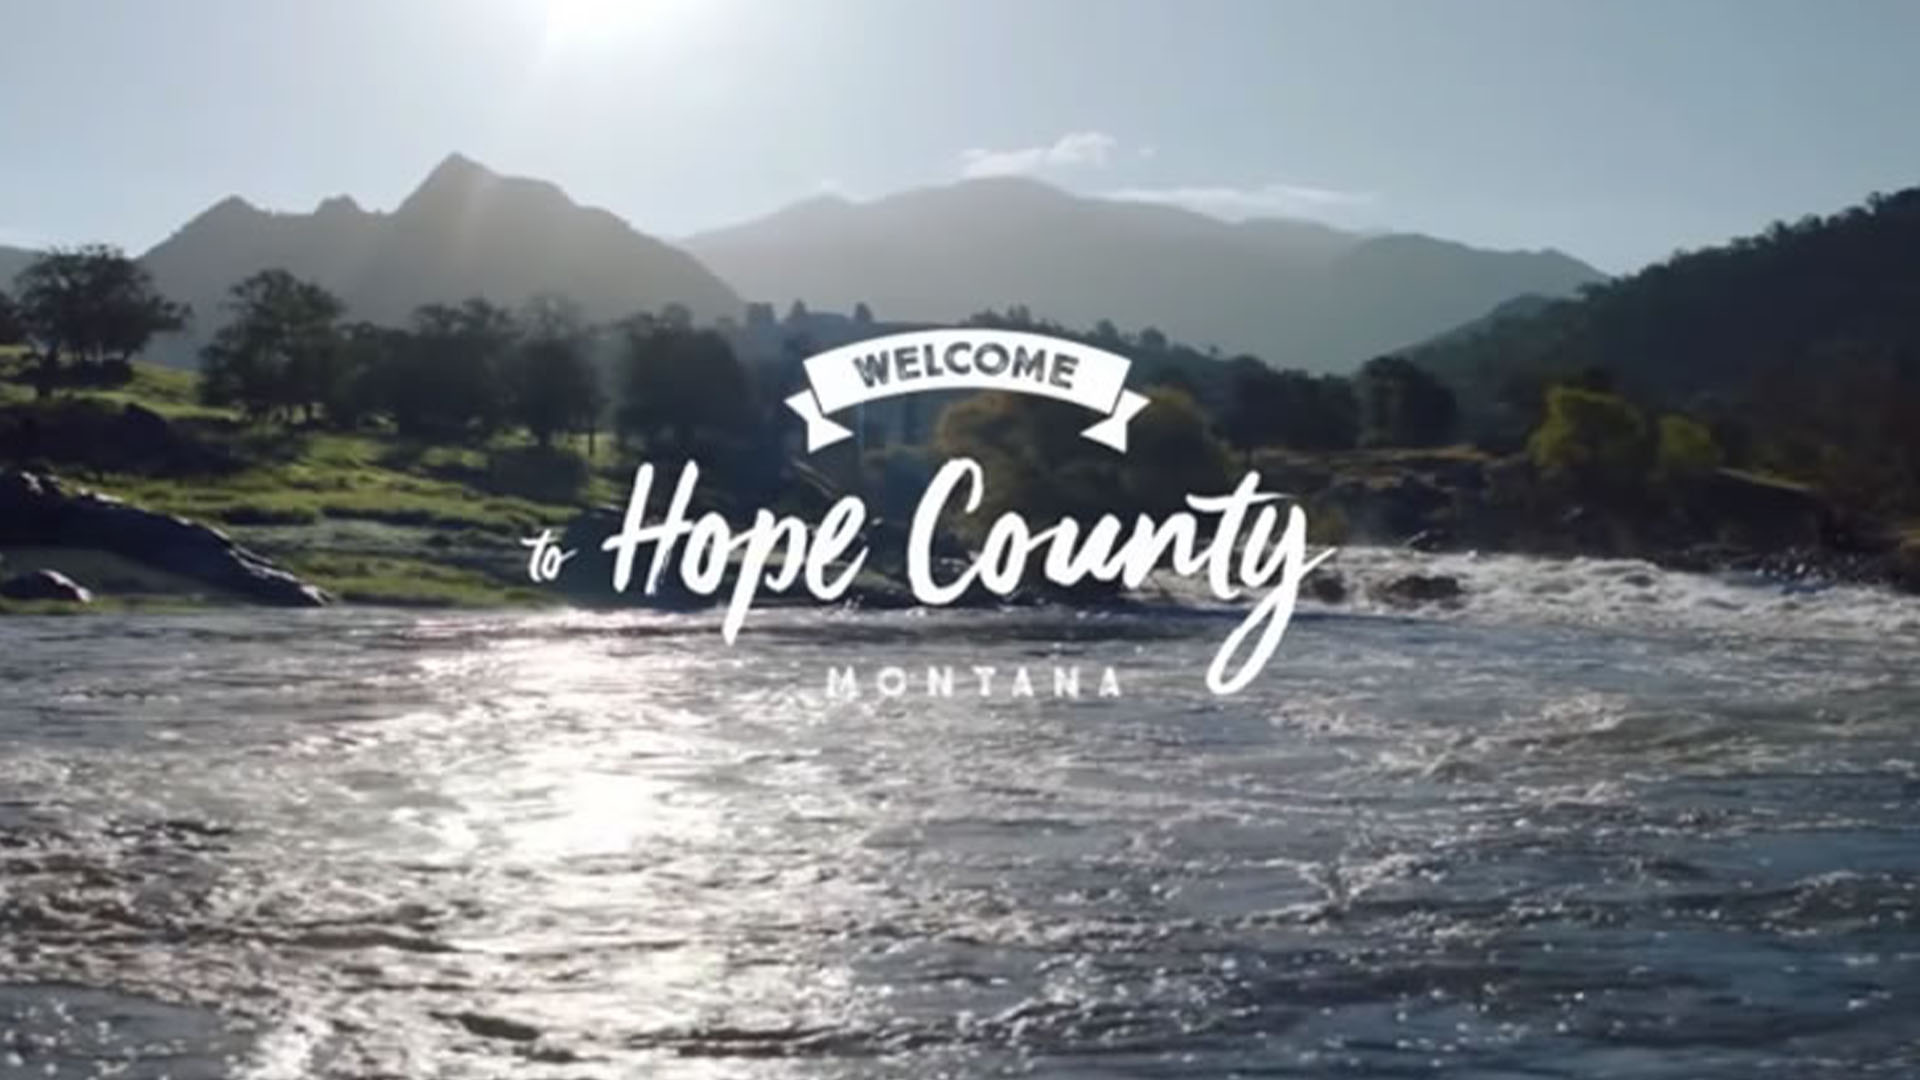 Far Cry 5 The Game About A Rural Militant Cult Is Being Used To Promote Montana Tourism Pcgamesn